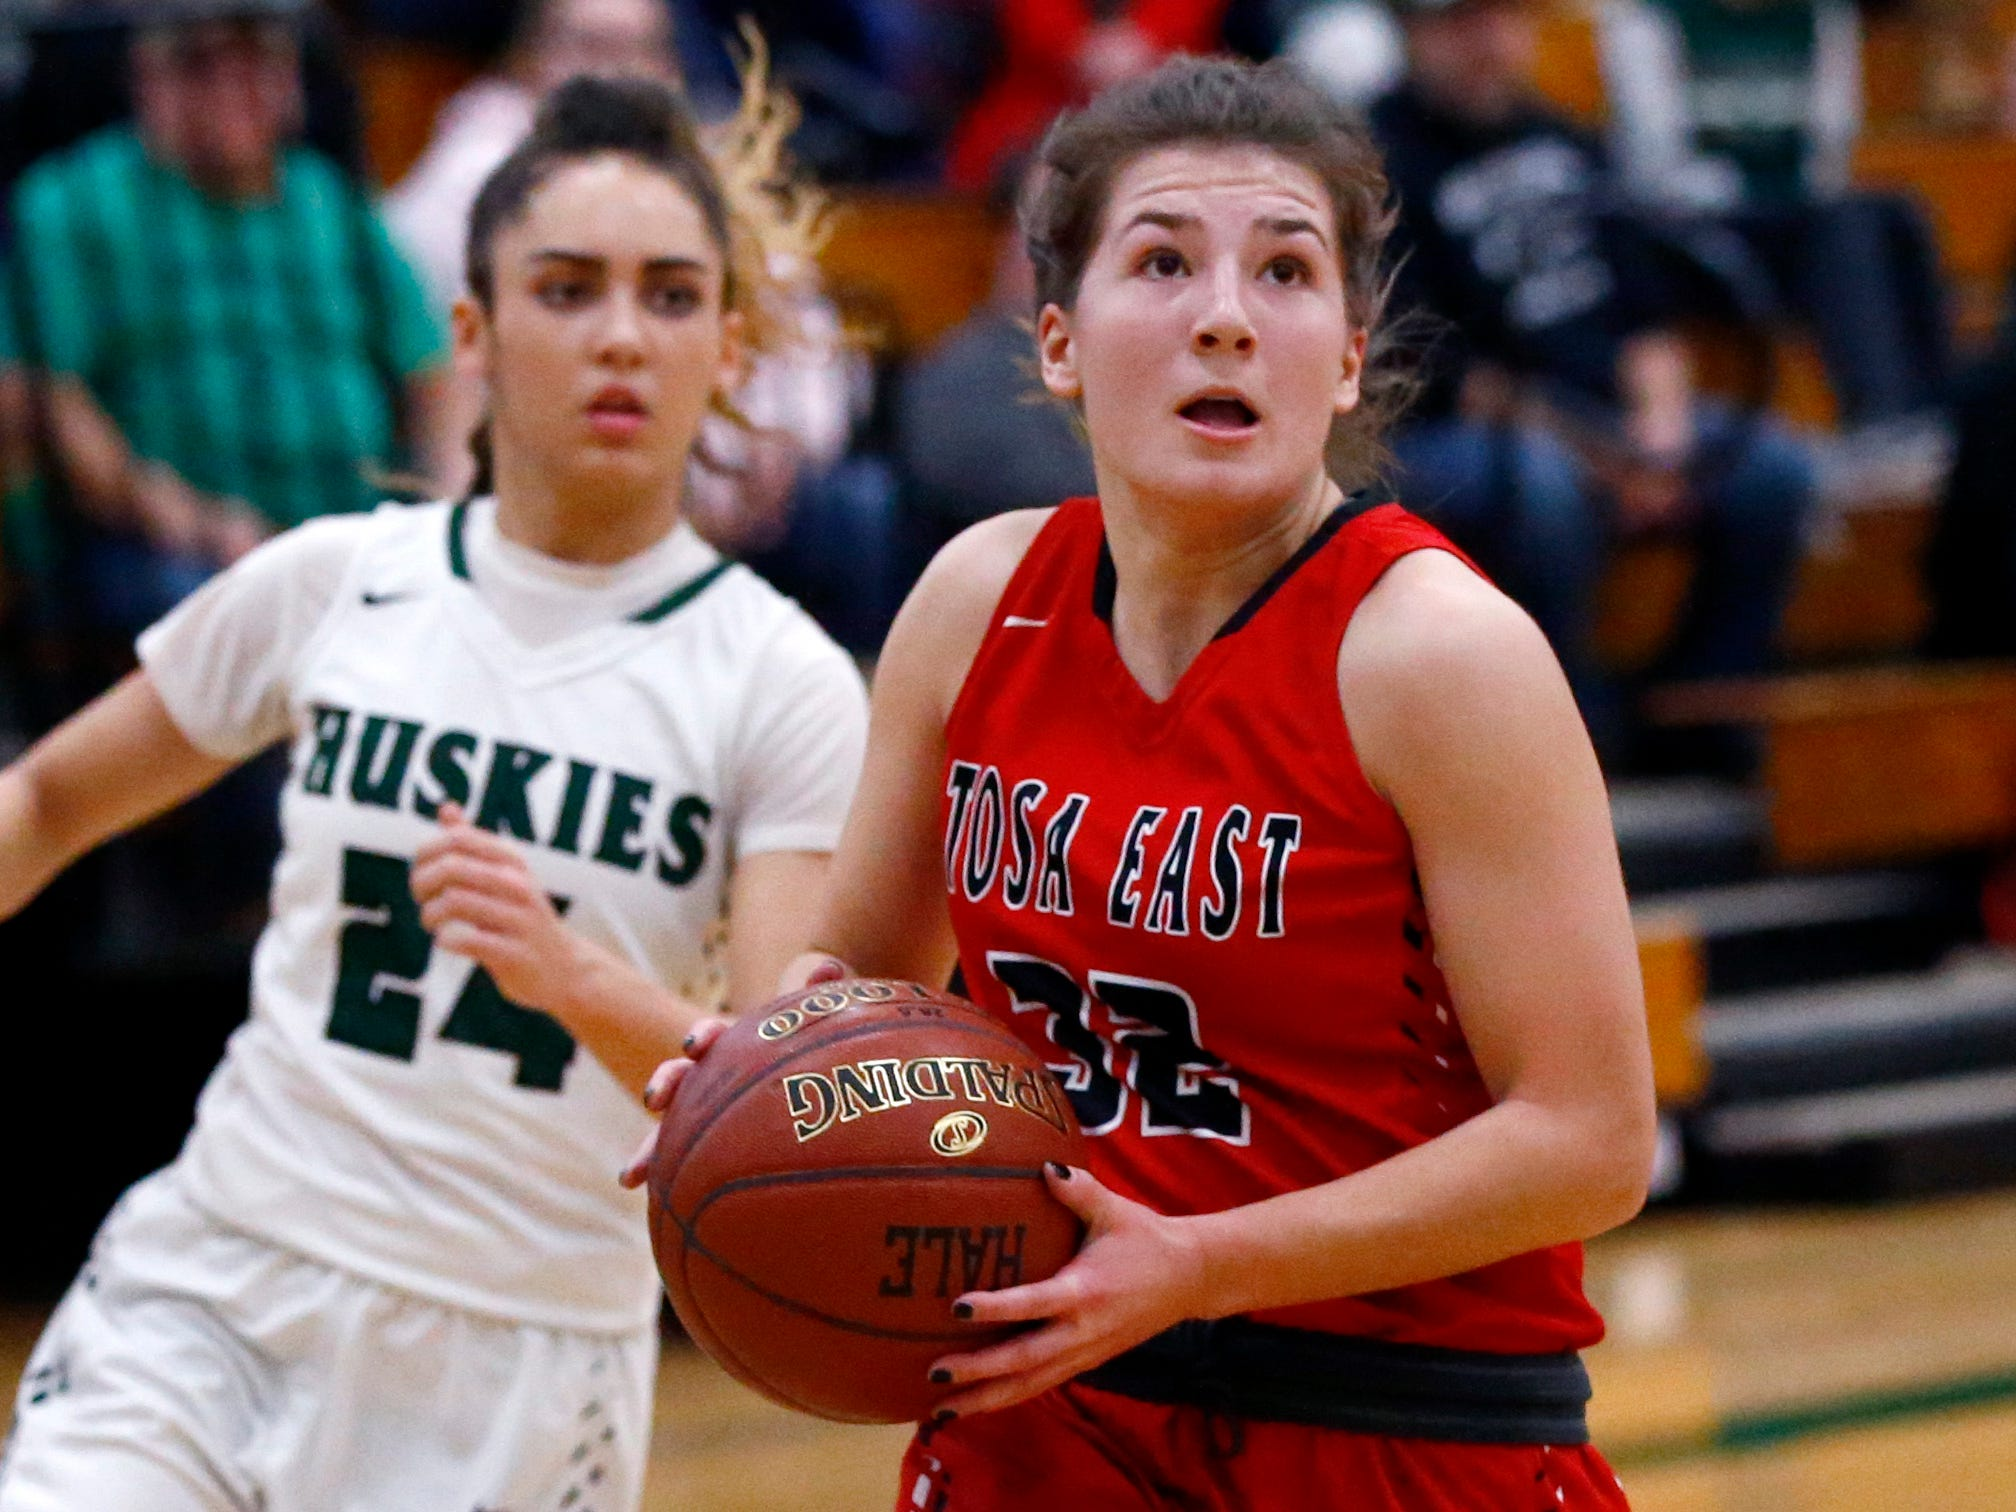 Wauwatosa East's Sydney Halstead drives past West Allis Hale's Natalia Leguizamon for two points at Hale on Nov. 30.